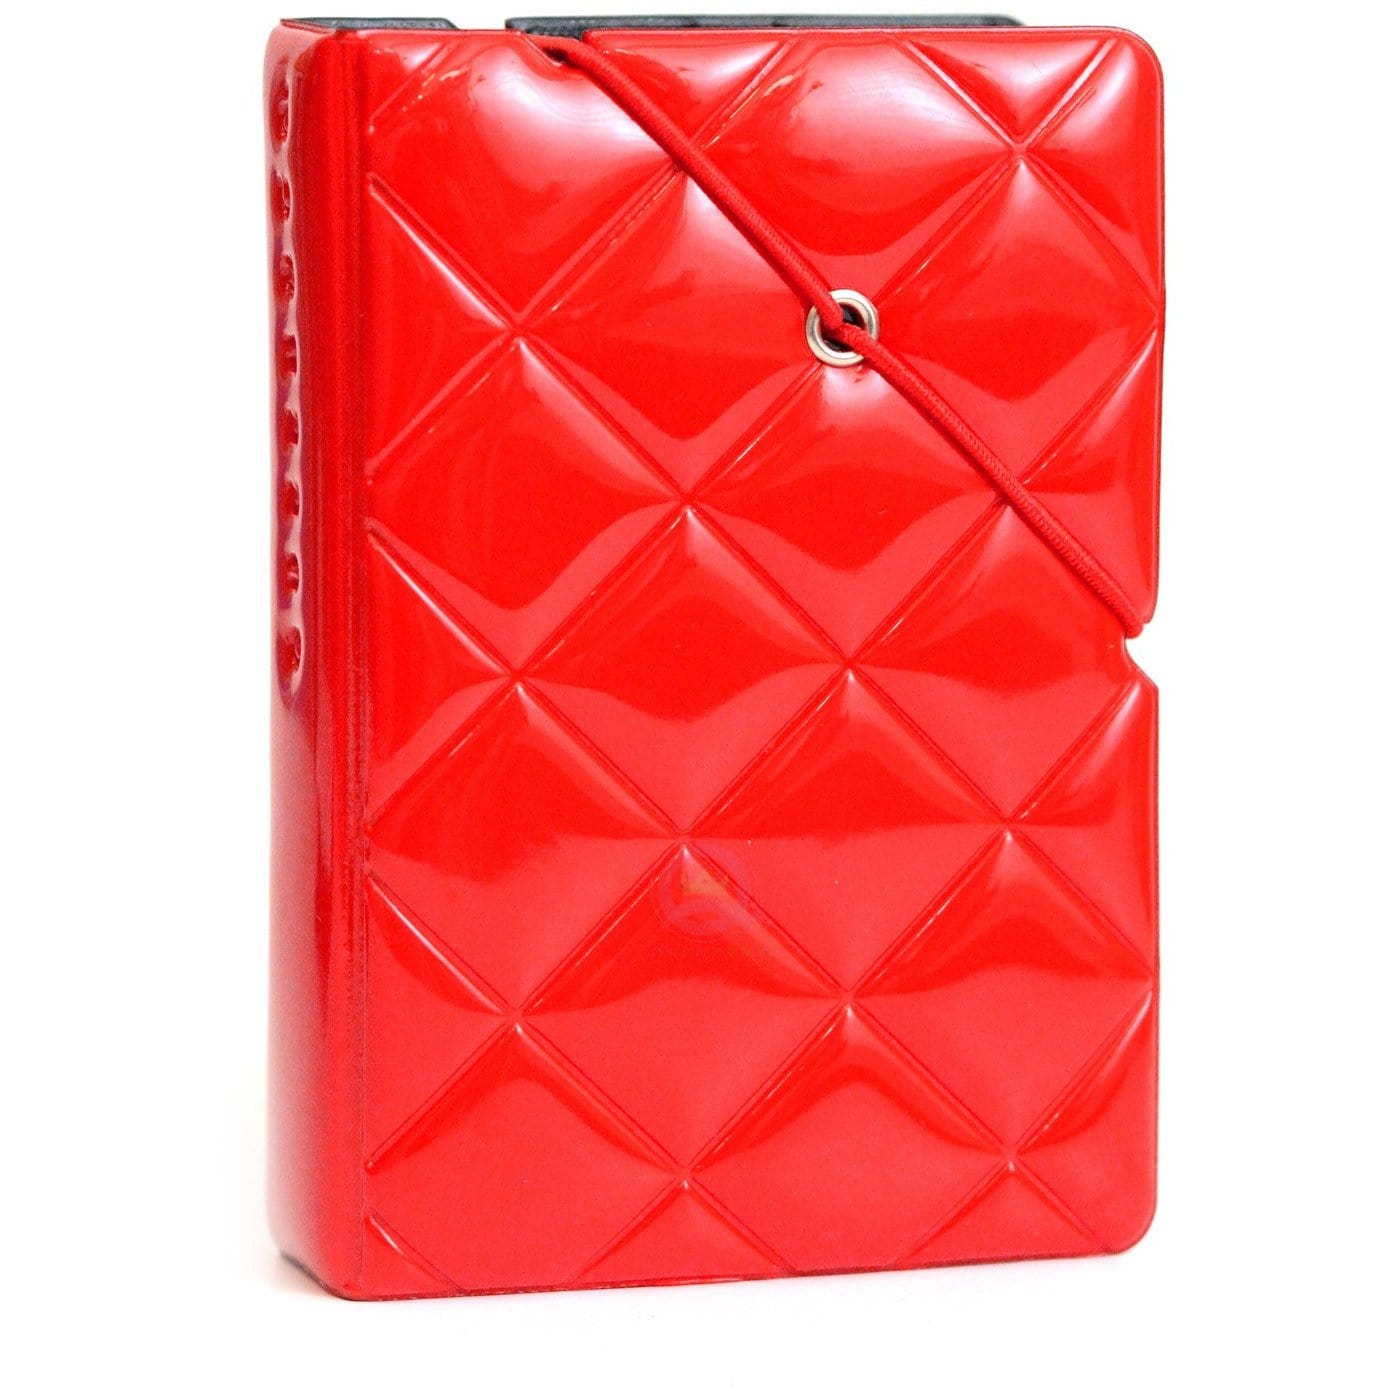 Bling Book - Red